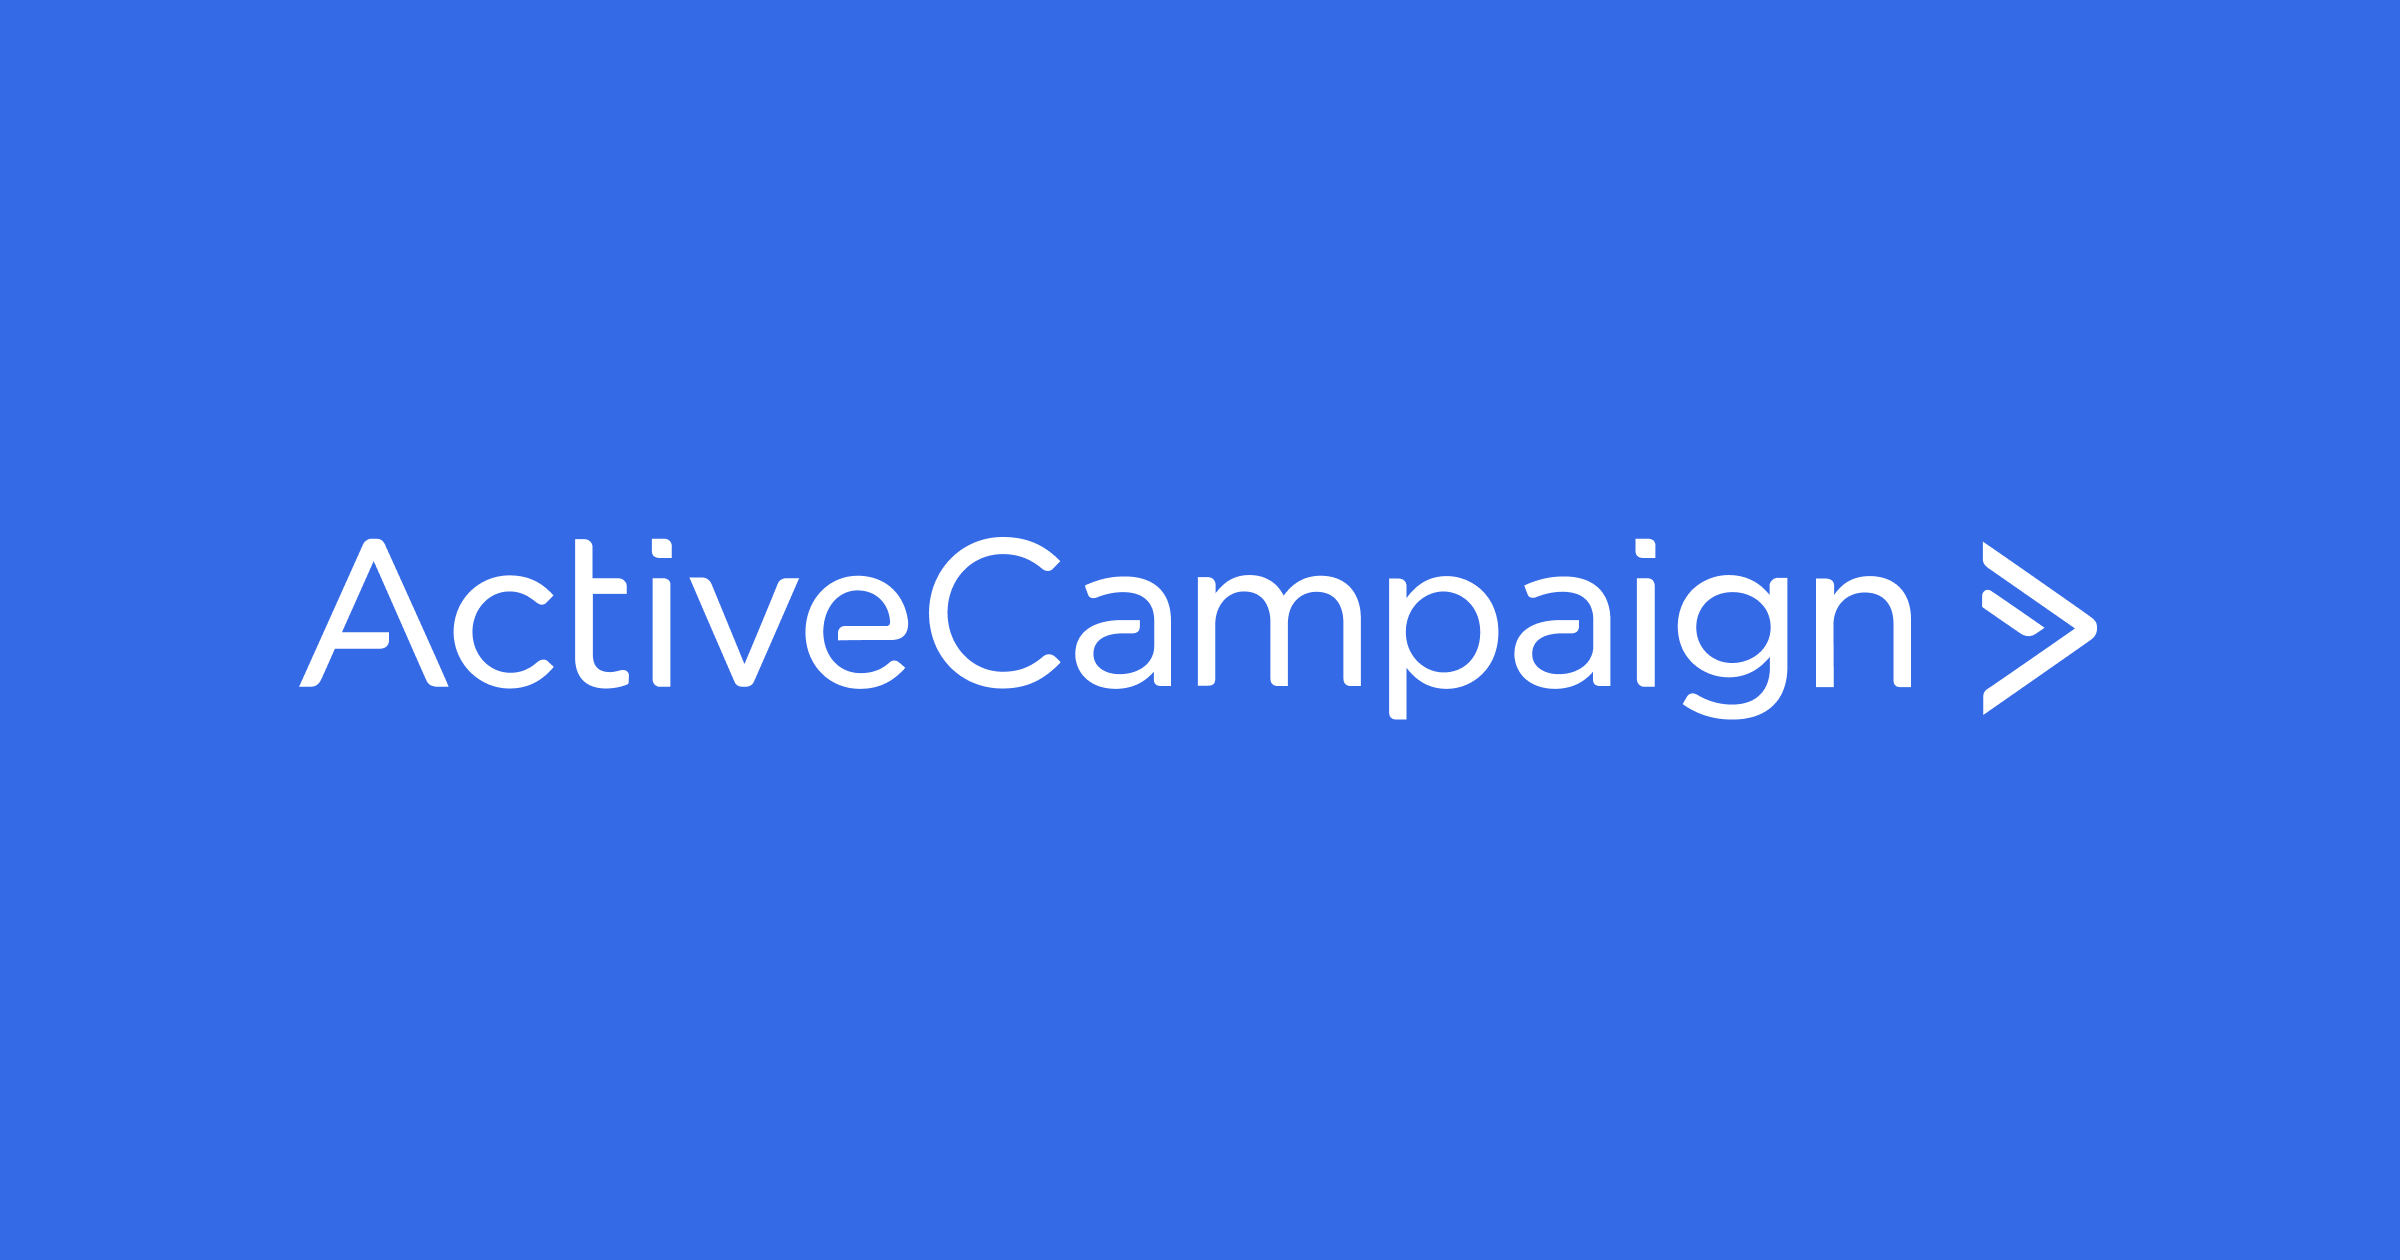 ActiveCampaign - #1 Customer Experience Automation Platform